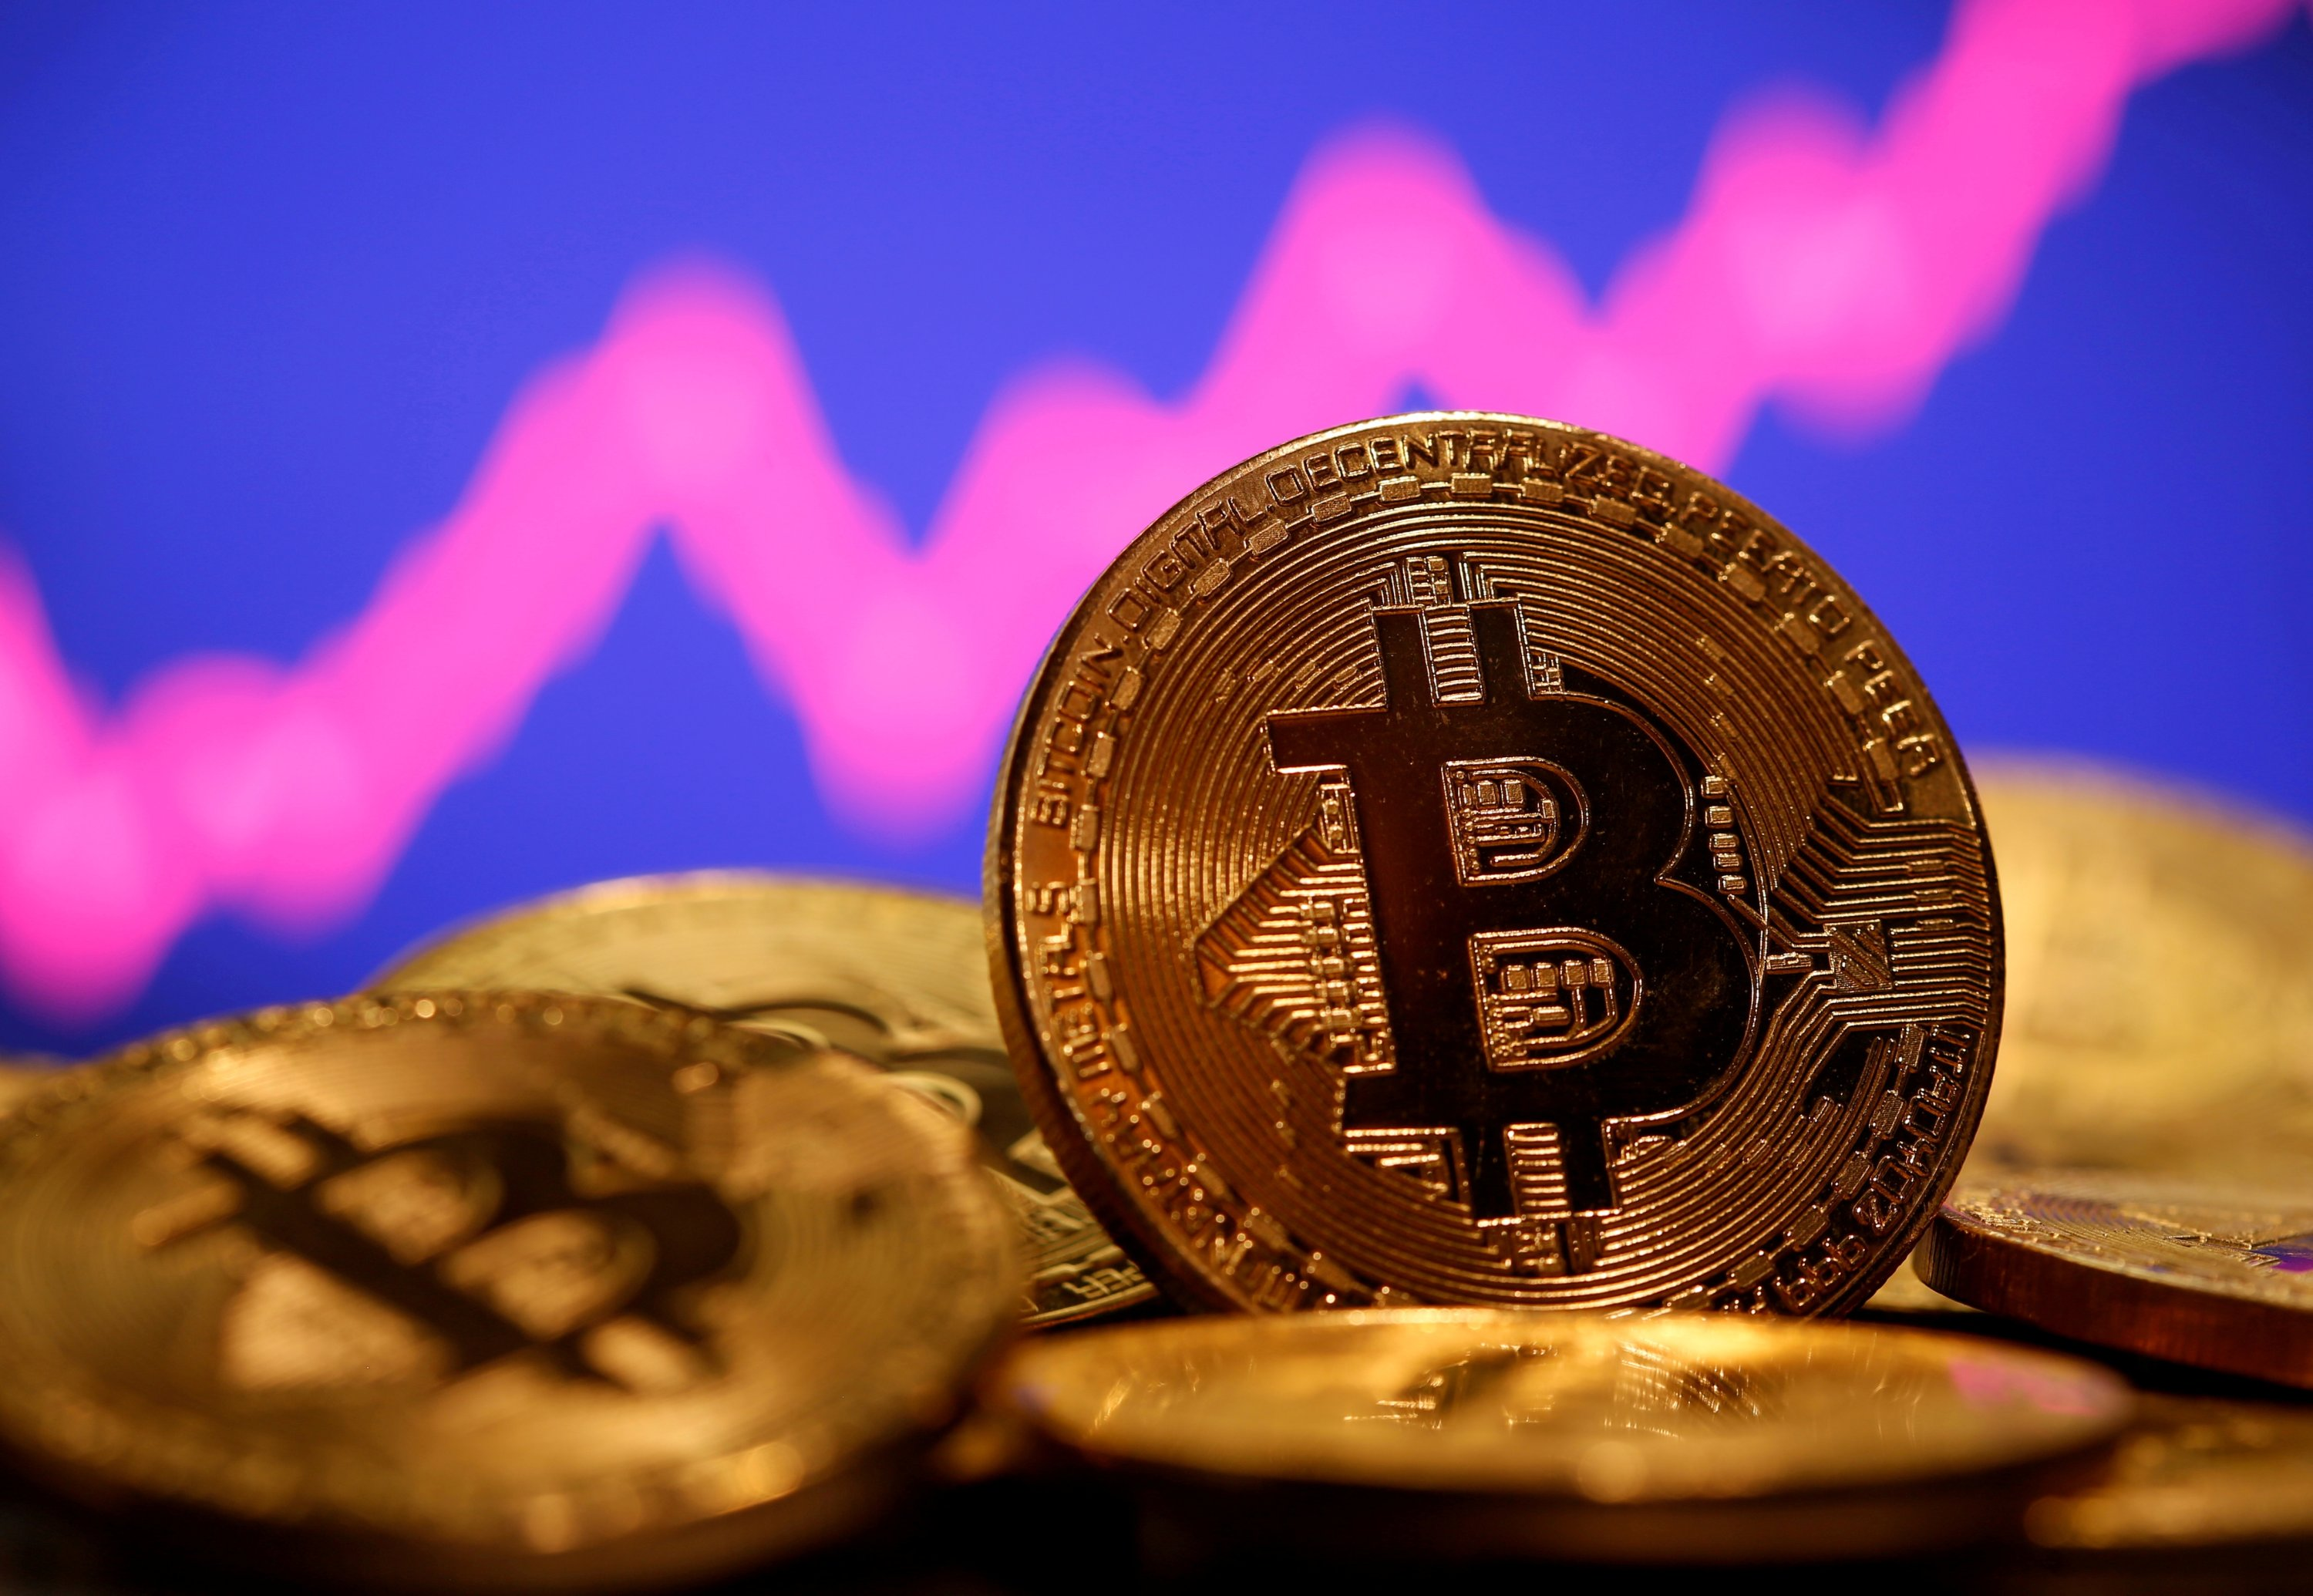 28 million bitcoins seized meaning rio sports betting